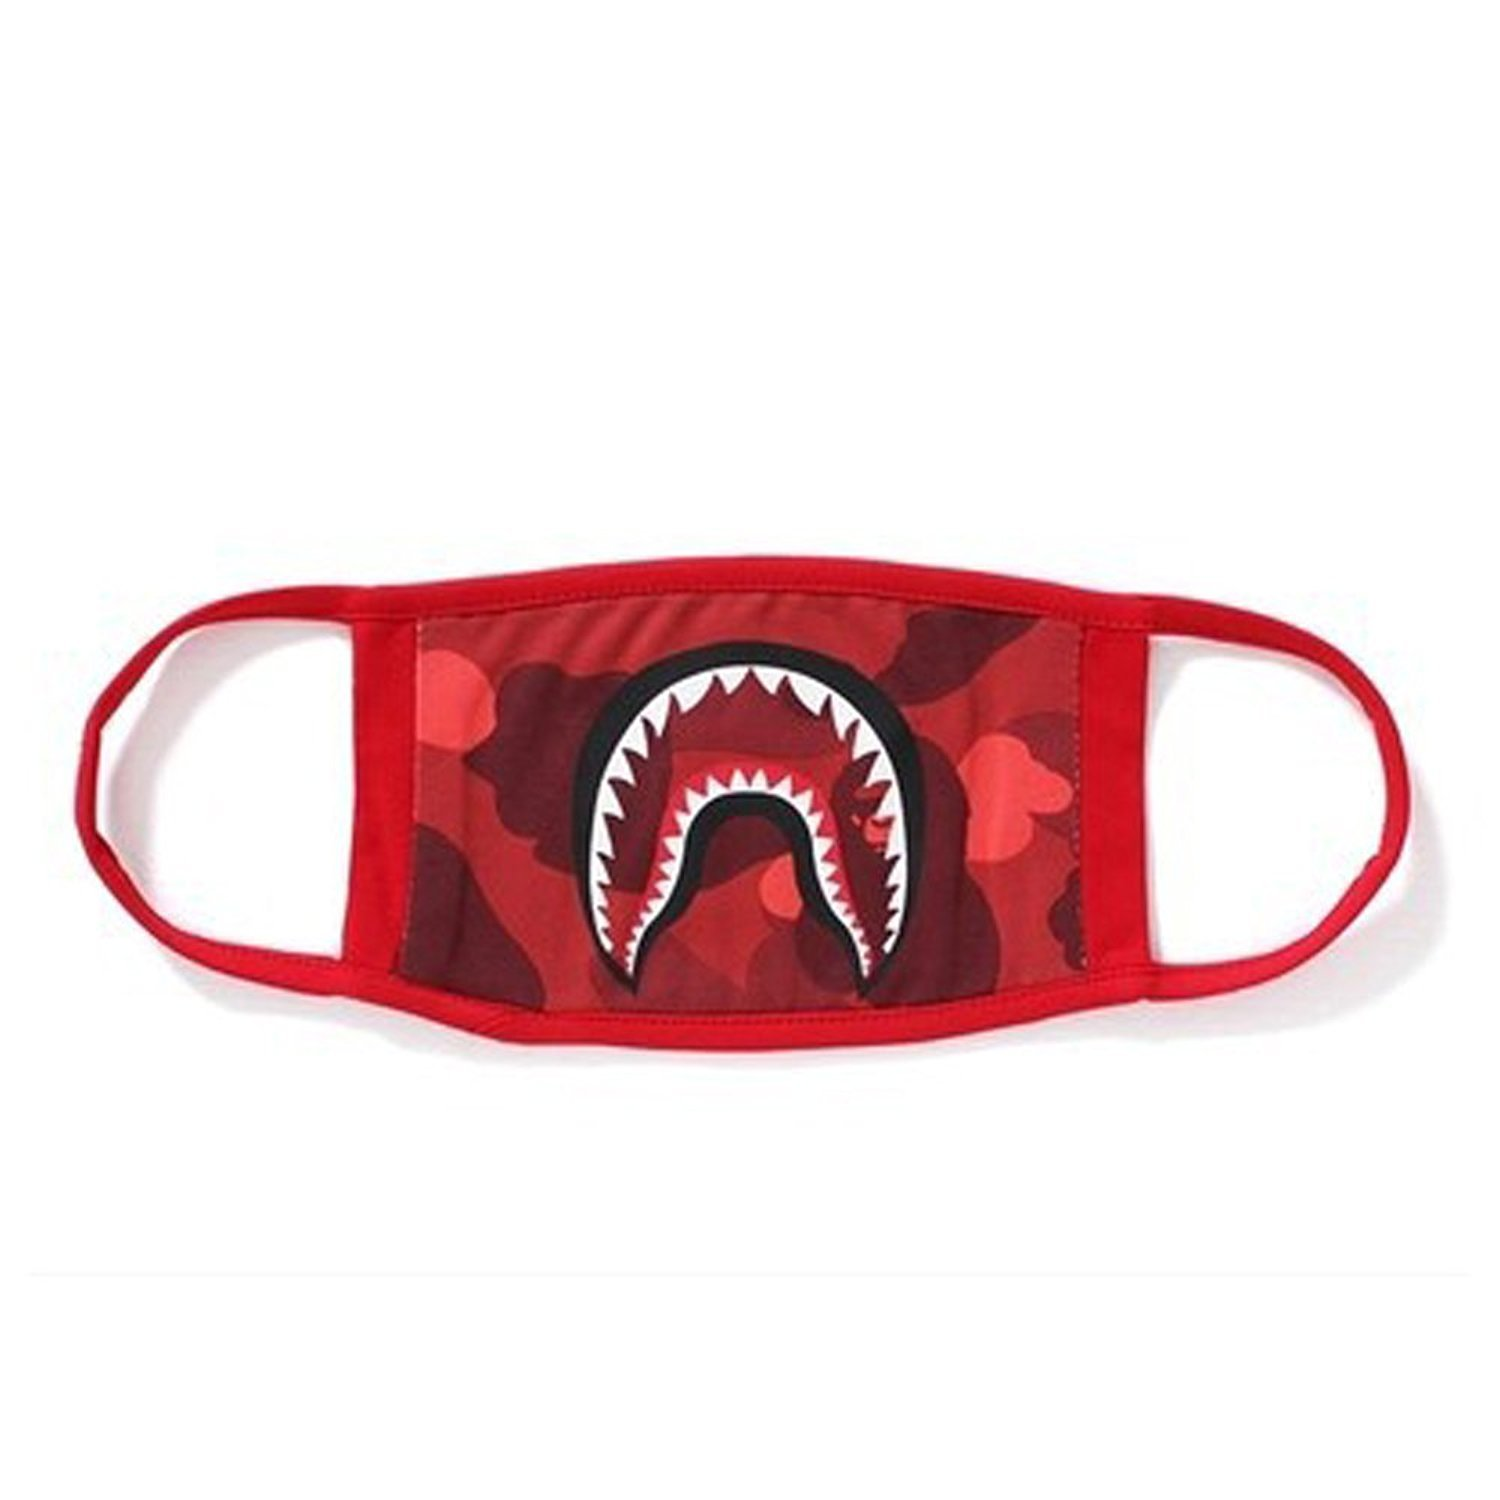 1 PackCamping First Aid Kits Bape Black Black Shark Face Mask